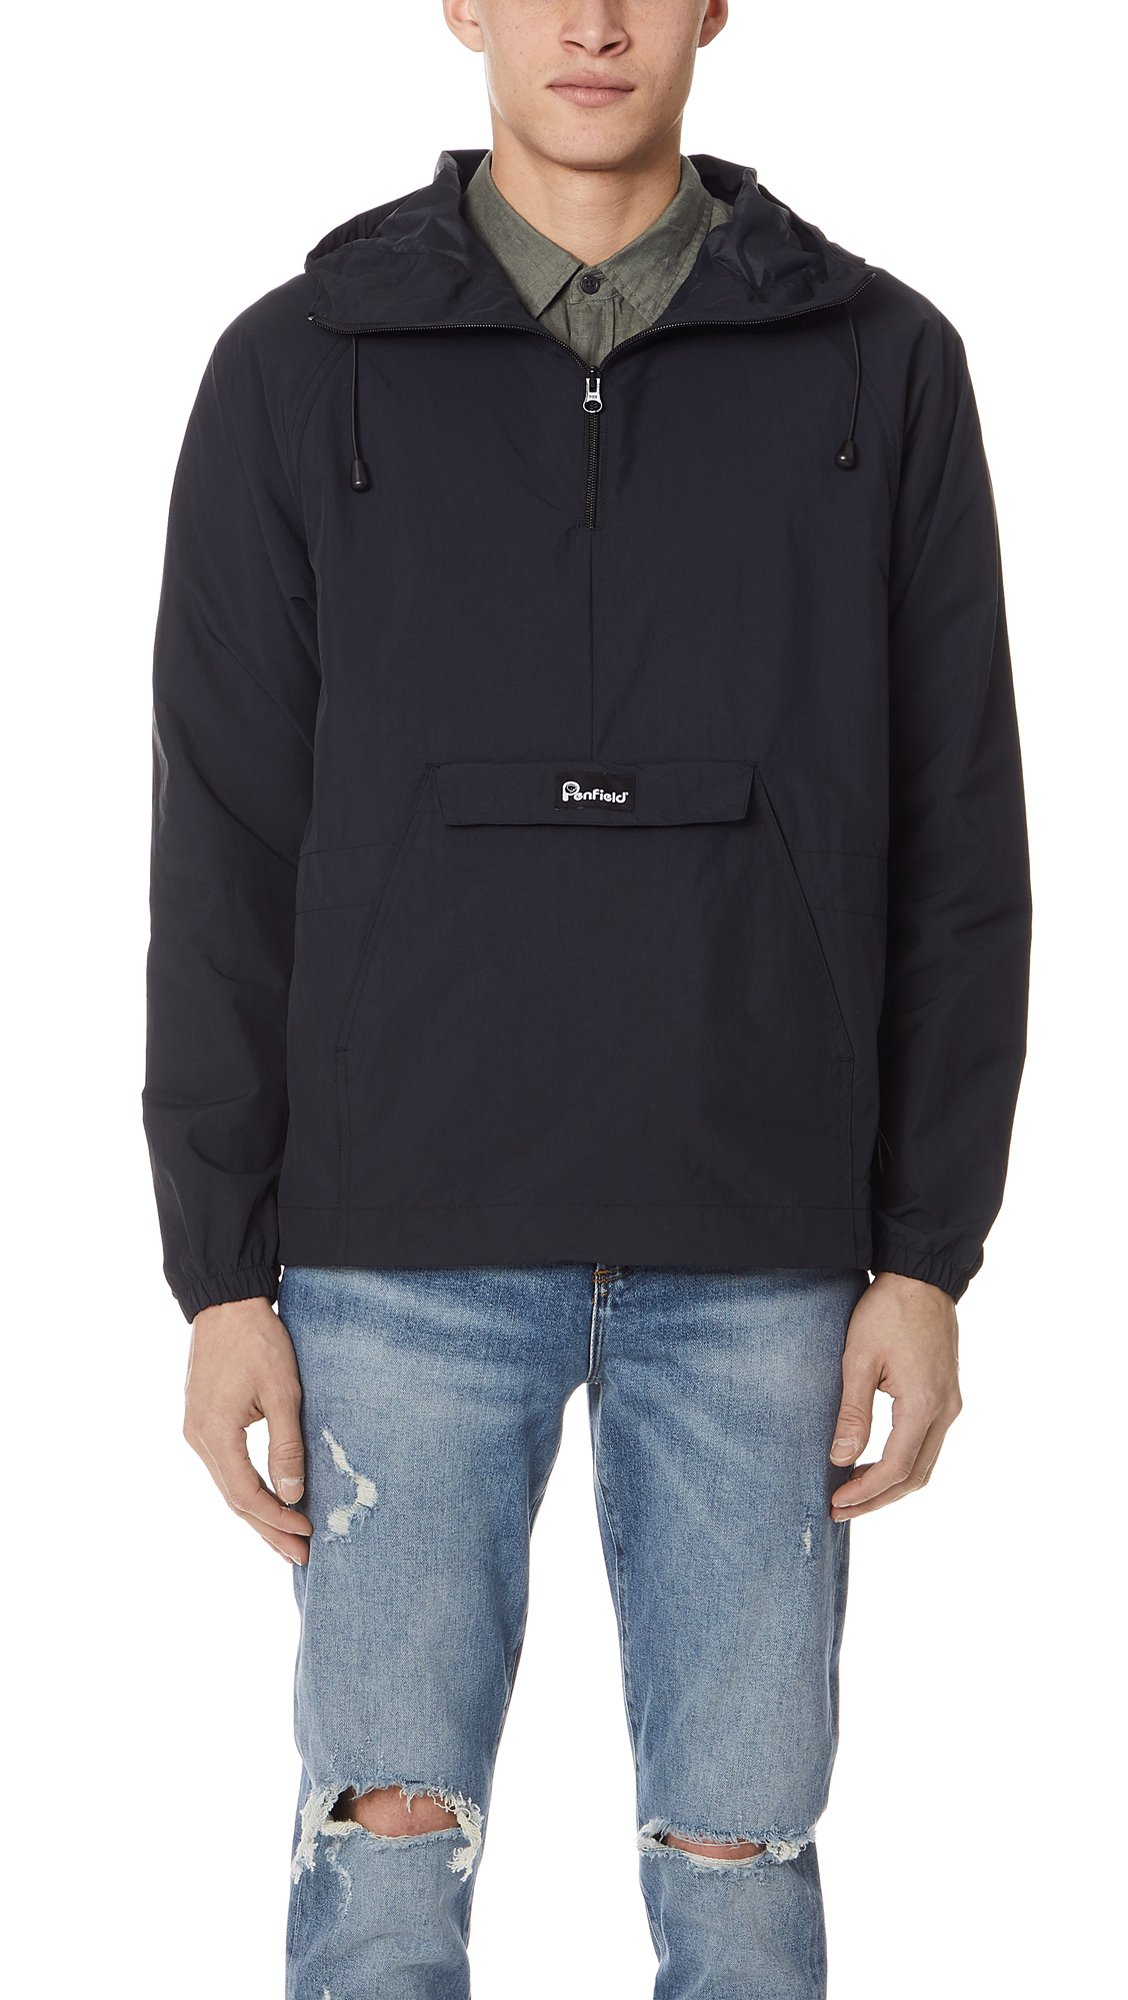 Penfield Men's Pacjac Pullover Jacket, Black, Large by Penfield